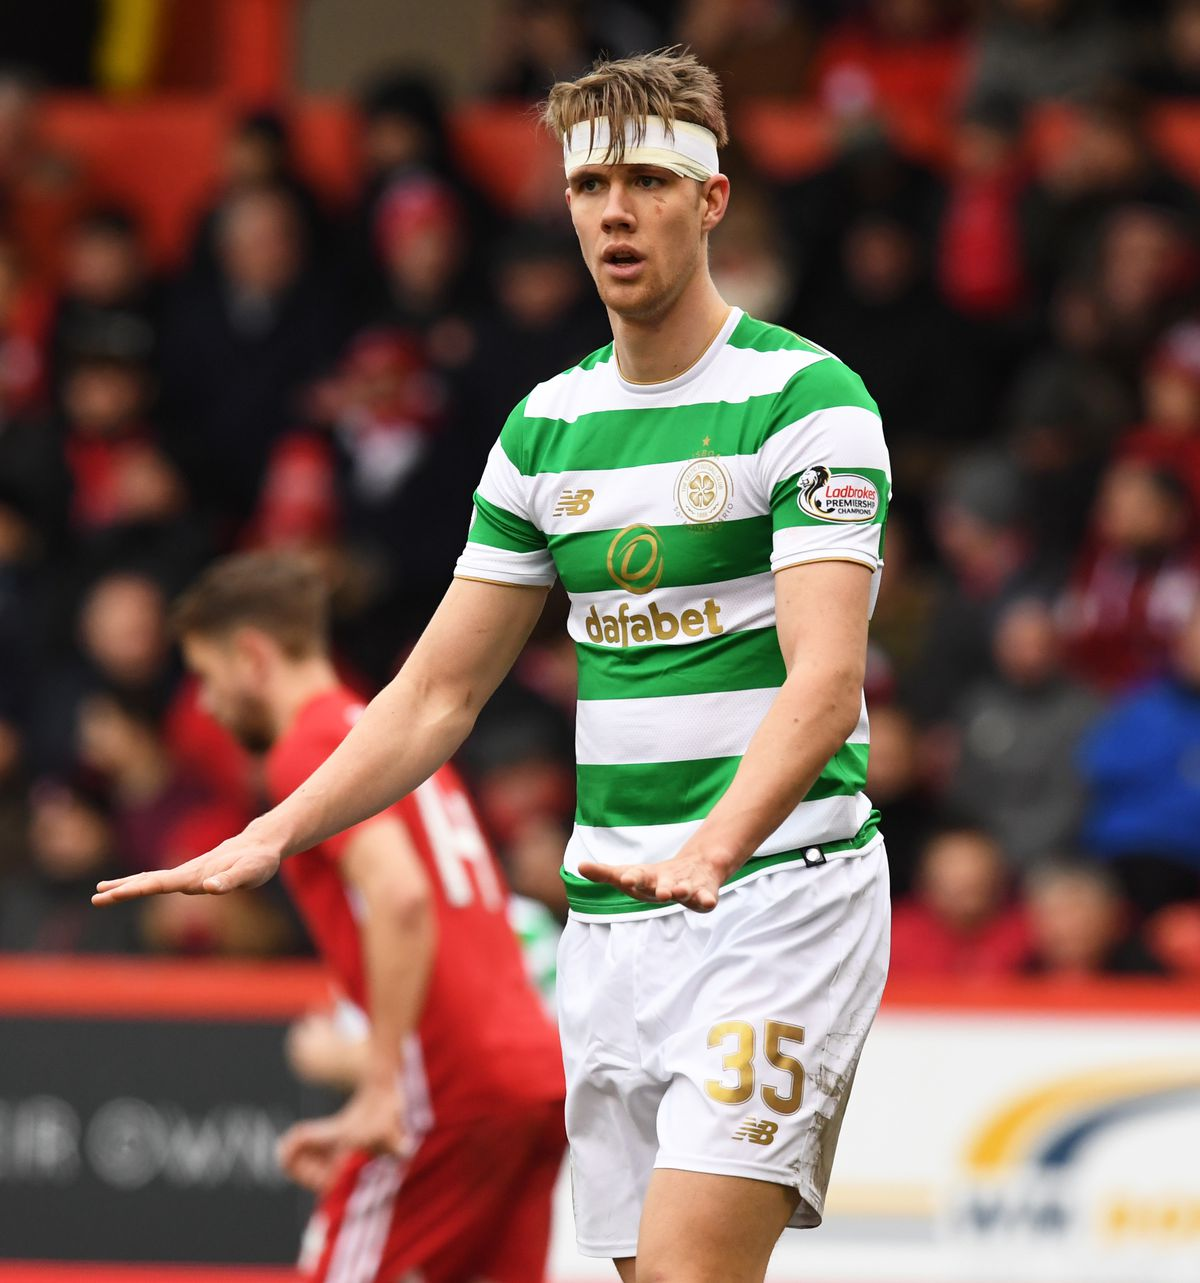 25/02/18 LADBROKES PREMIERSHIP.ABERDEEN V CELTIC.PITTODRIE - ABERDEEN.Celtic's Kristoff Ajer after being treated for a head knock.